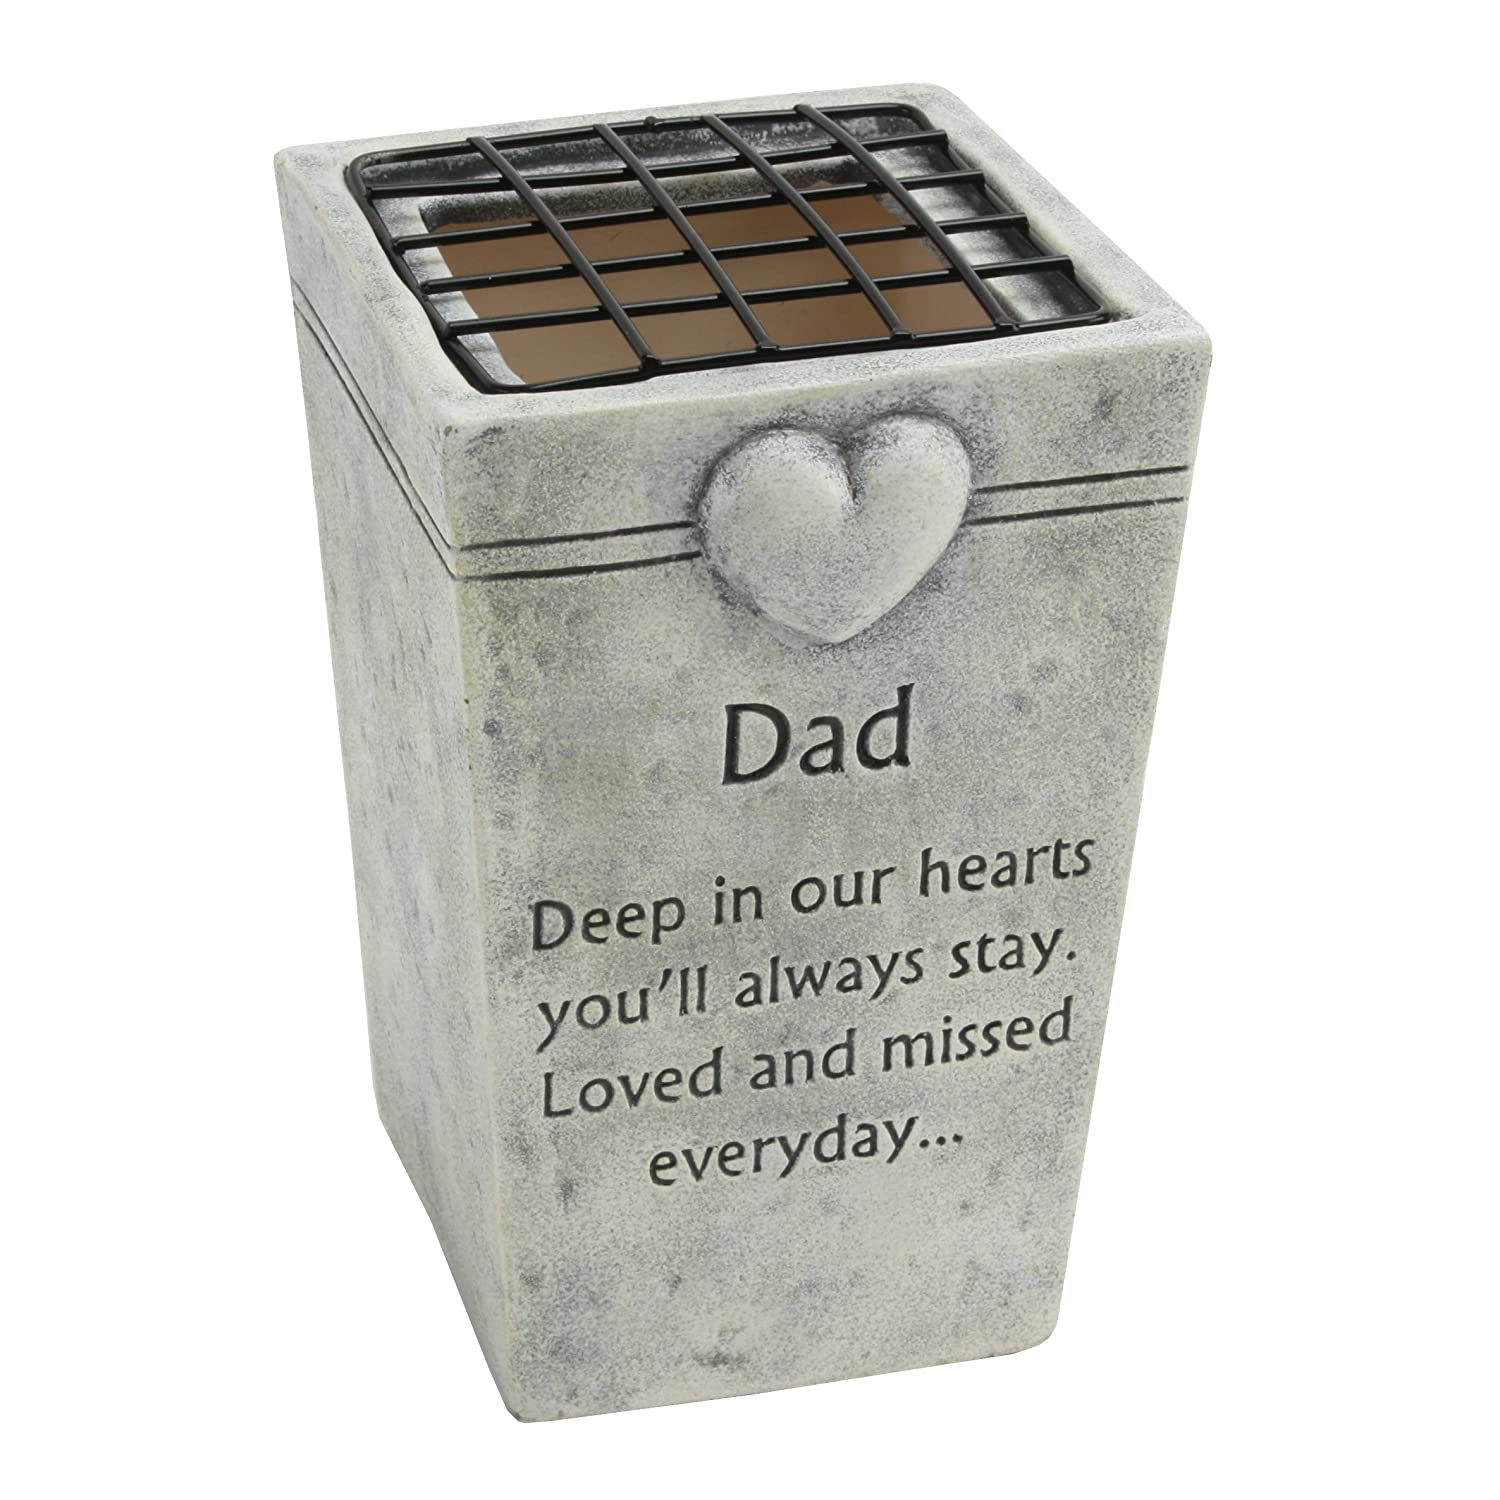 Graveside memorial ornaments dad grave flower pot holder amazon graveside memorial ornaments dad grave flower pot holder amazon kitchen home dhlflorist Image collections